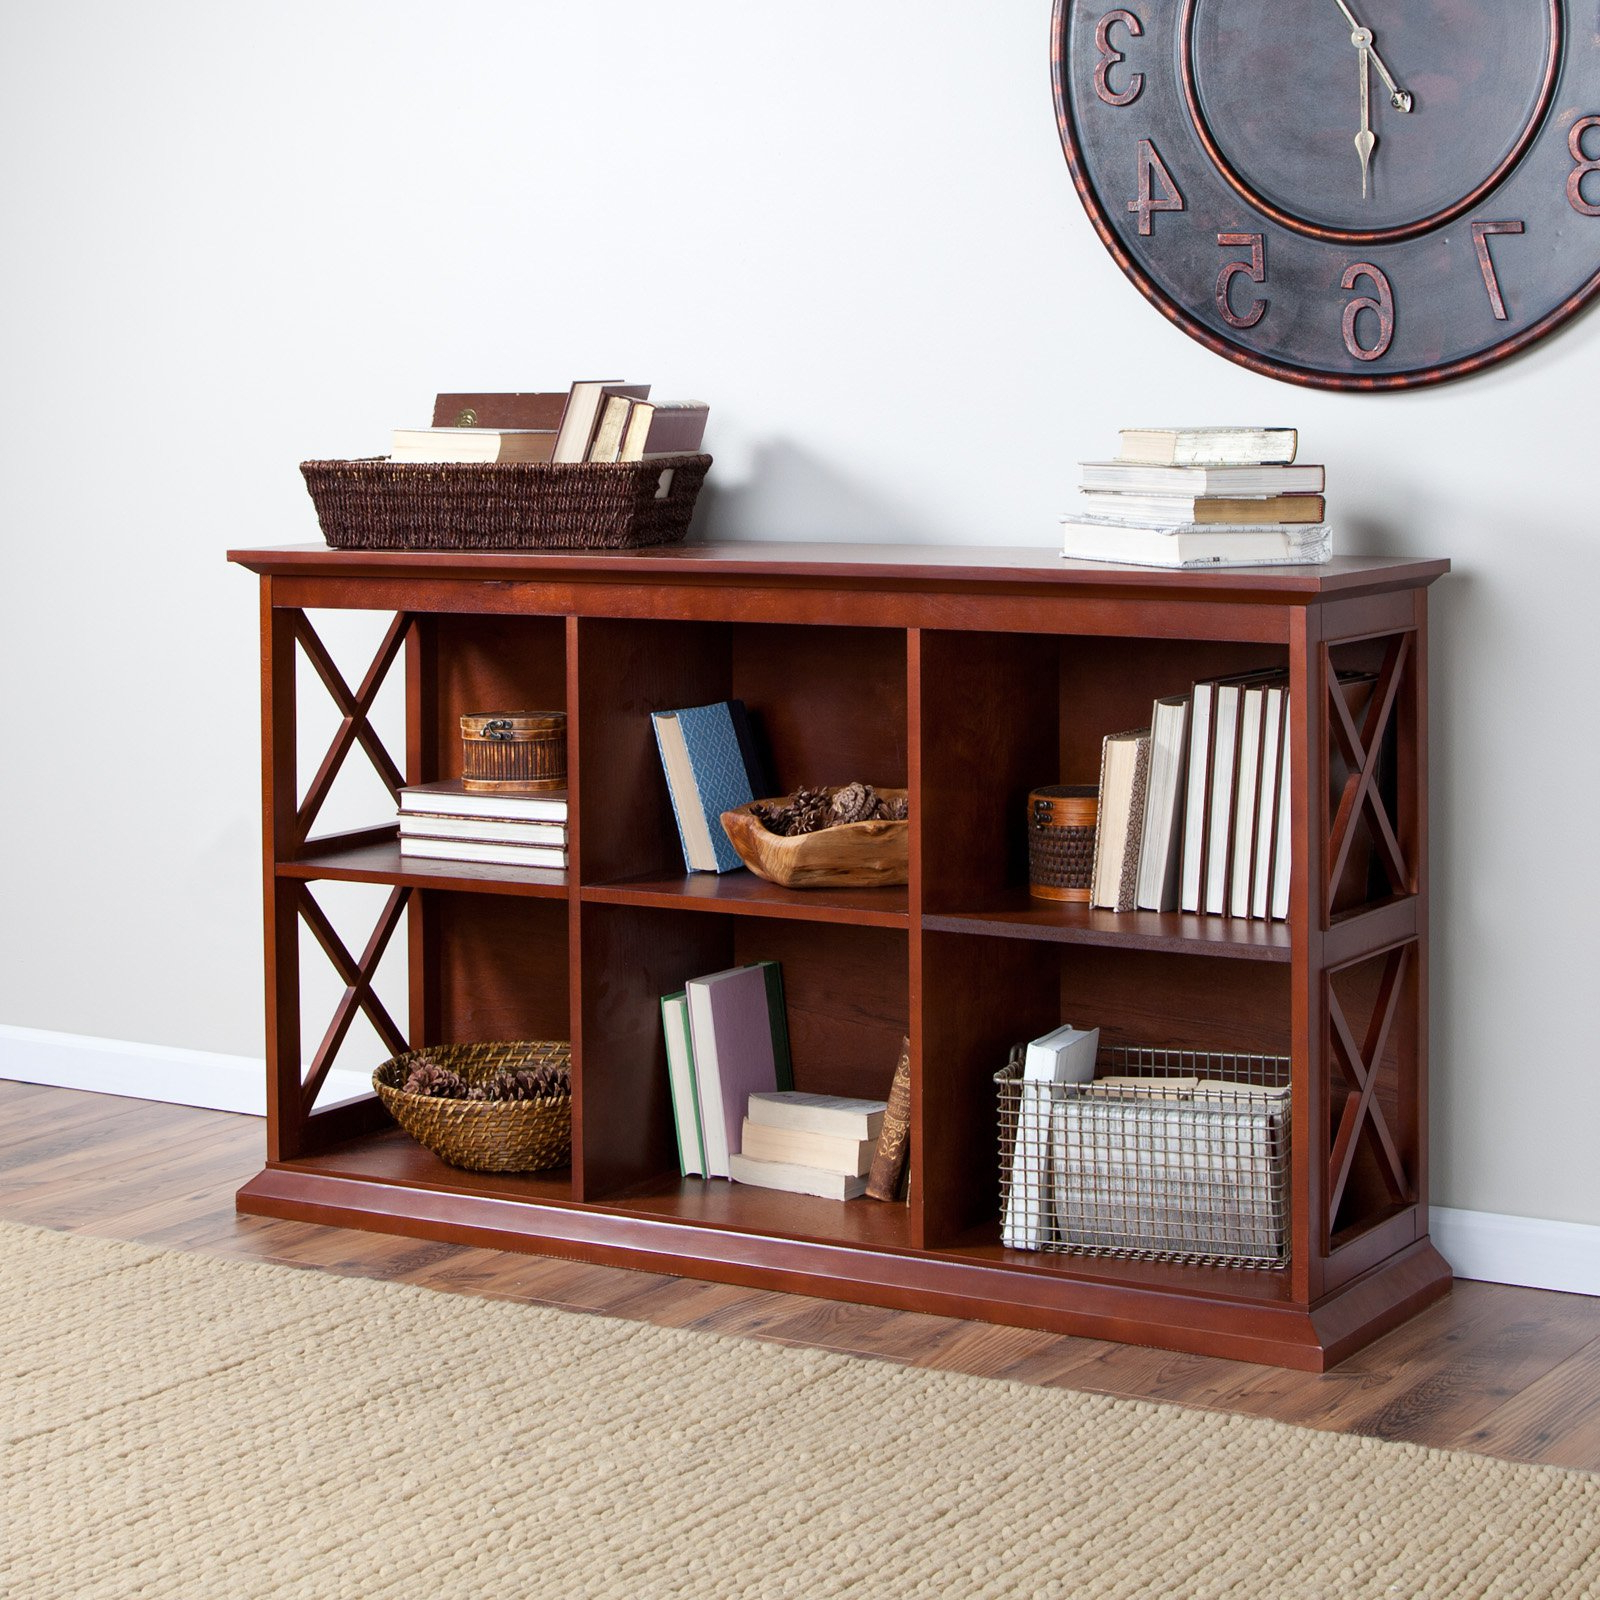 Belham Living Hampton Tv Stand Bookcase – Cherry – Walmart With Popular Tv Stands With Matching Bookcases (Gallery 2 of 20)